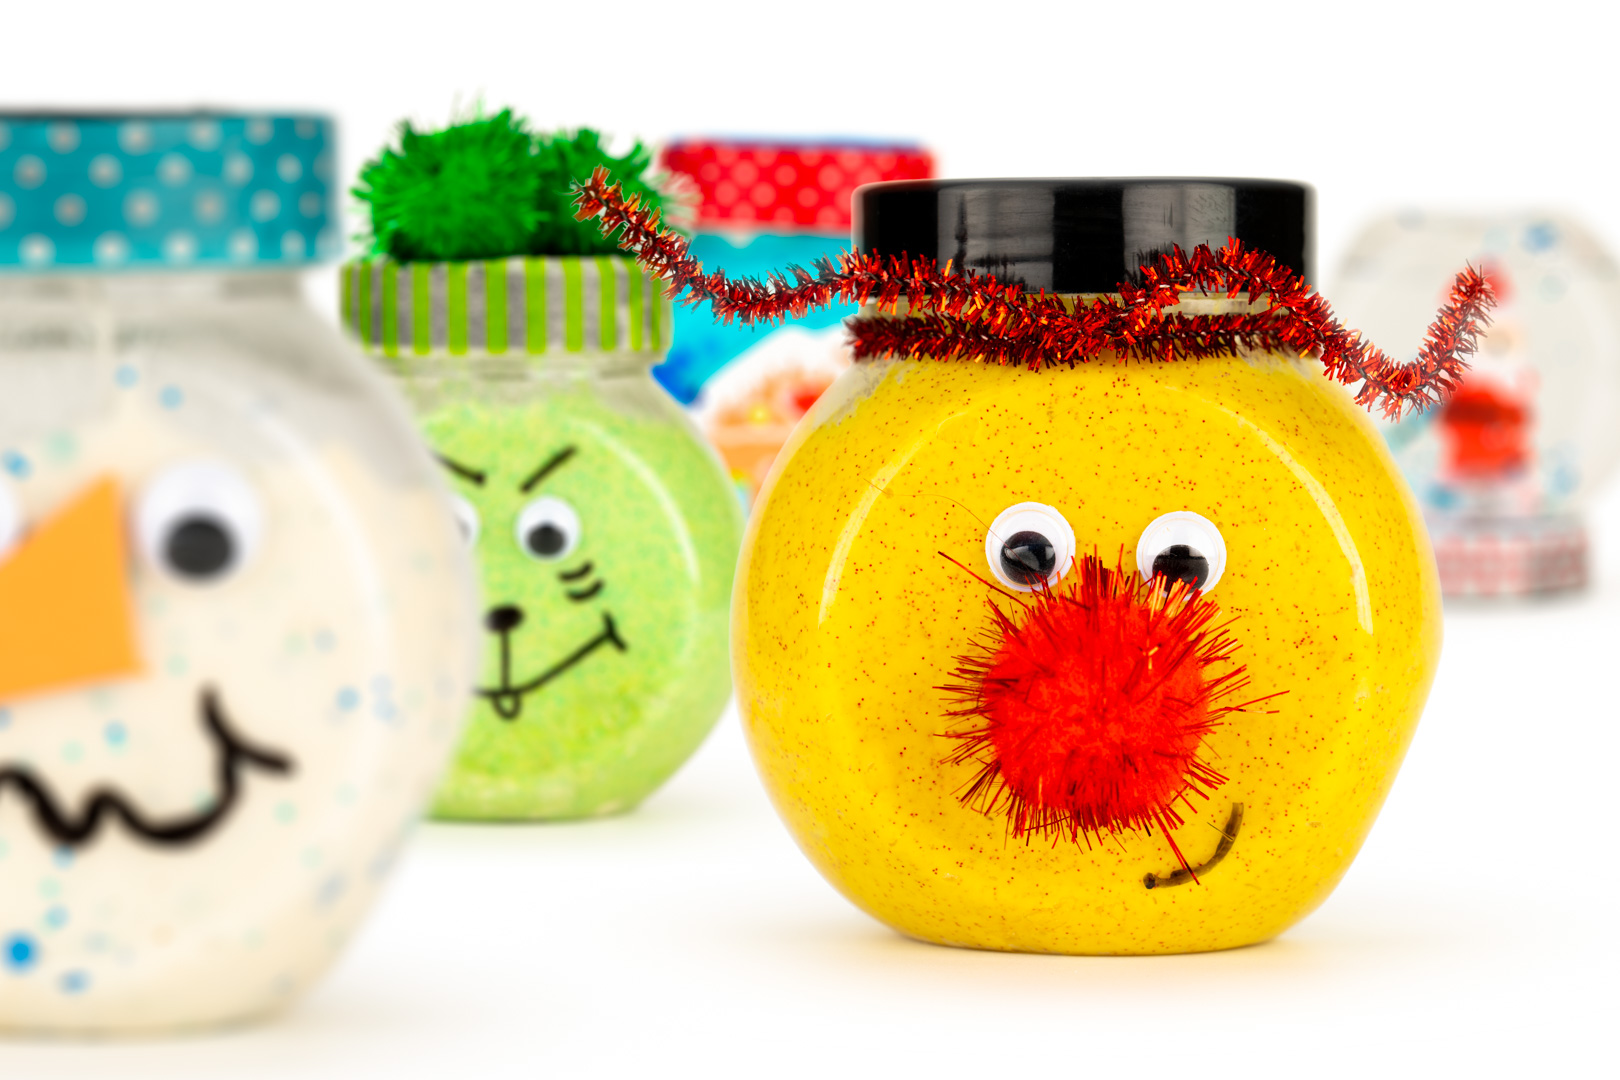 Slime Fun! - Surprisingly Low mess, fun and impressive activities kids can take home as a party memento!